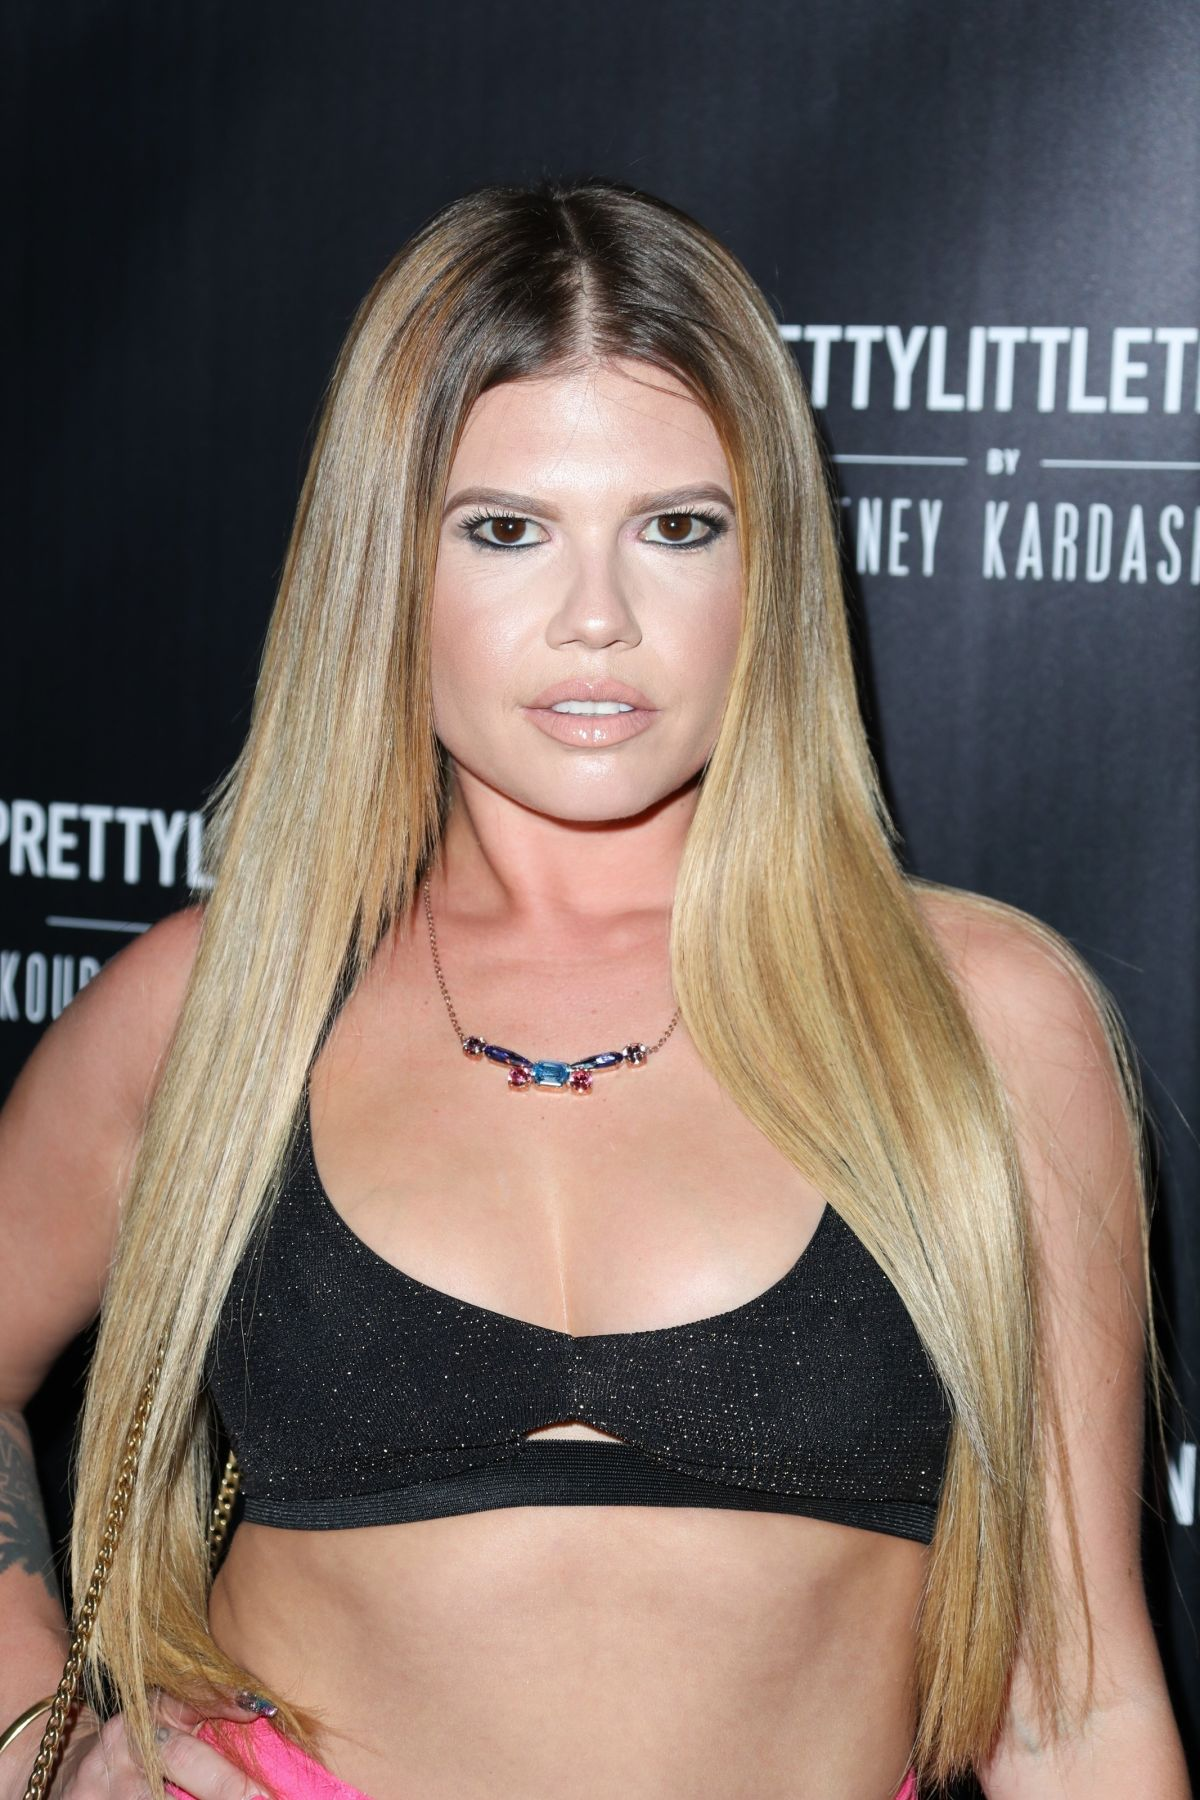 CHANEL WEST COAST at Prettylittlething by Kourtney ...